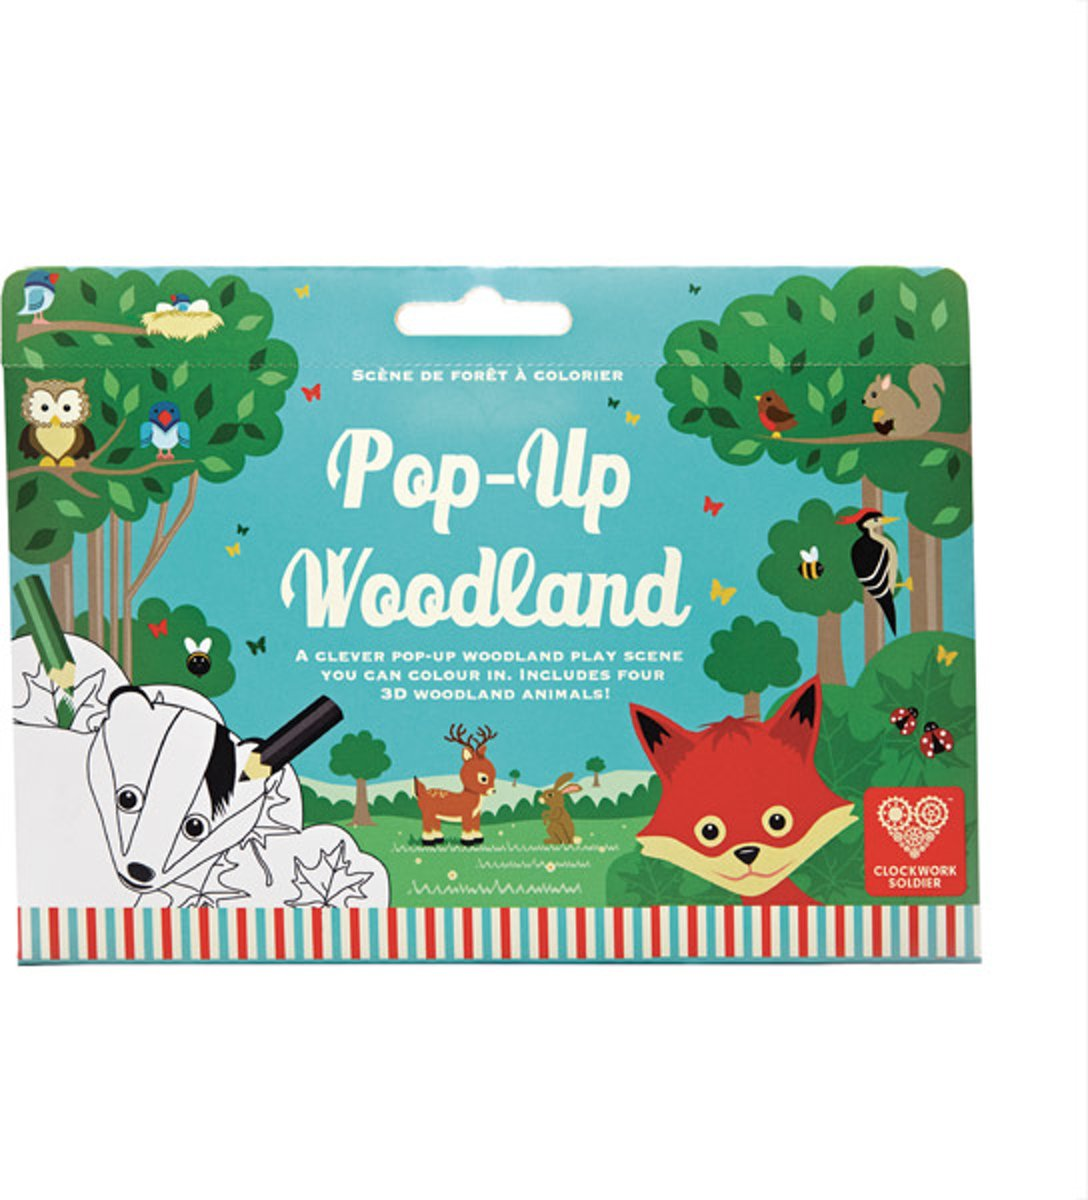 Clockwork Soldier Pop-up Woodland kopen